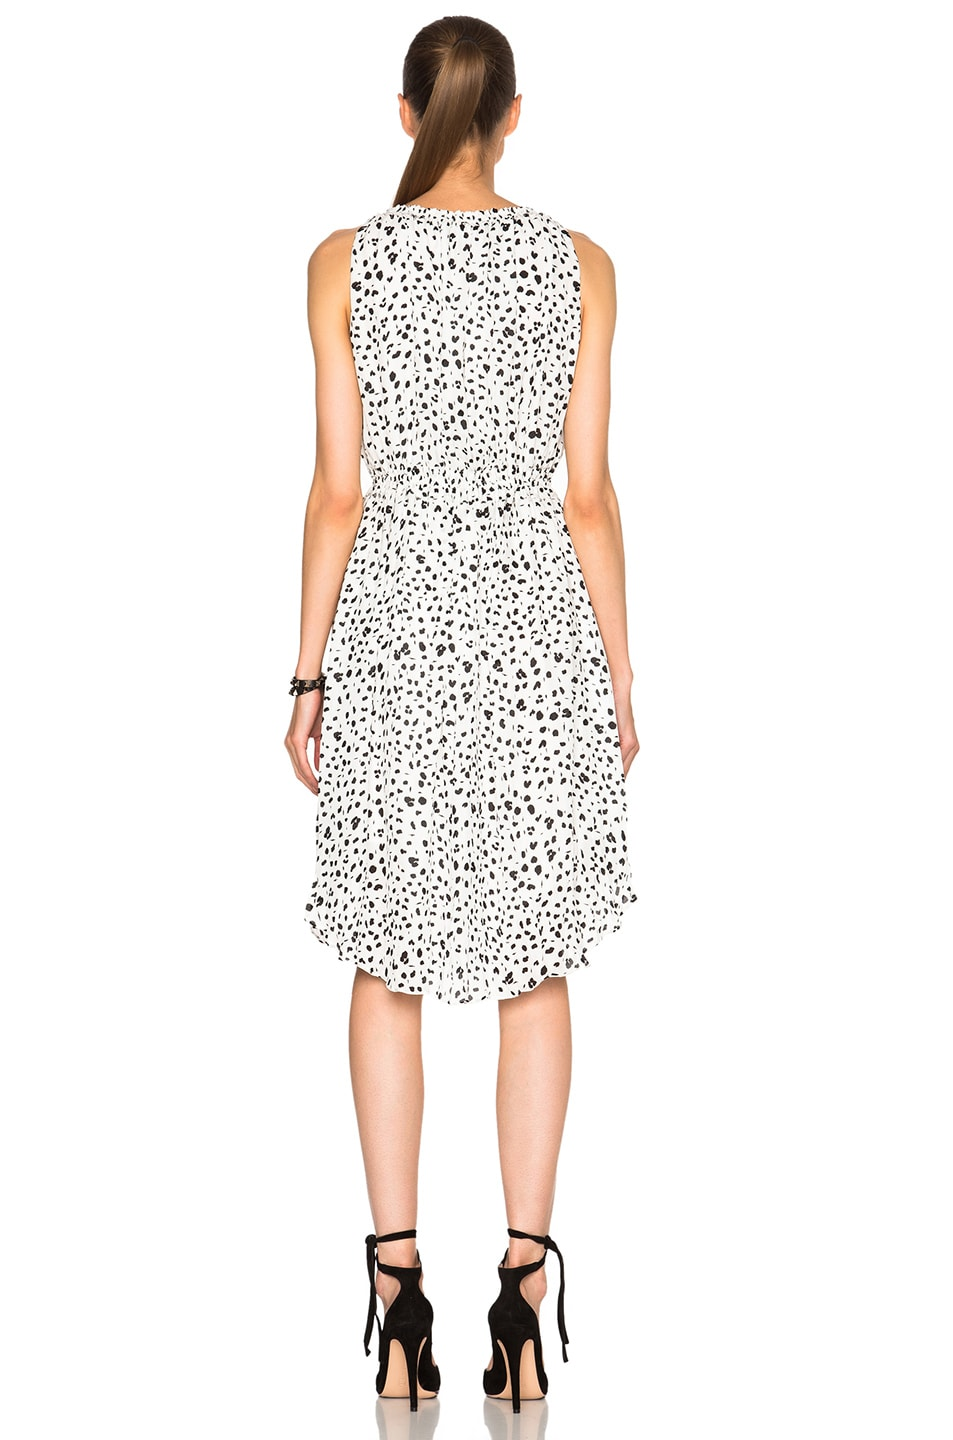 Image 4 of DEREK LAM 10 CROSBY Gathered Dress in White & Black